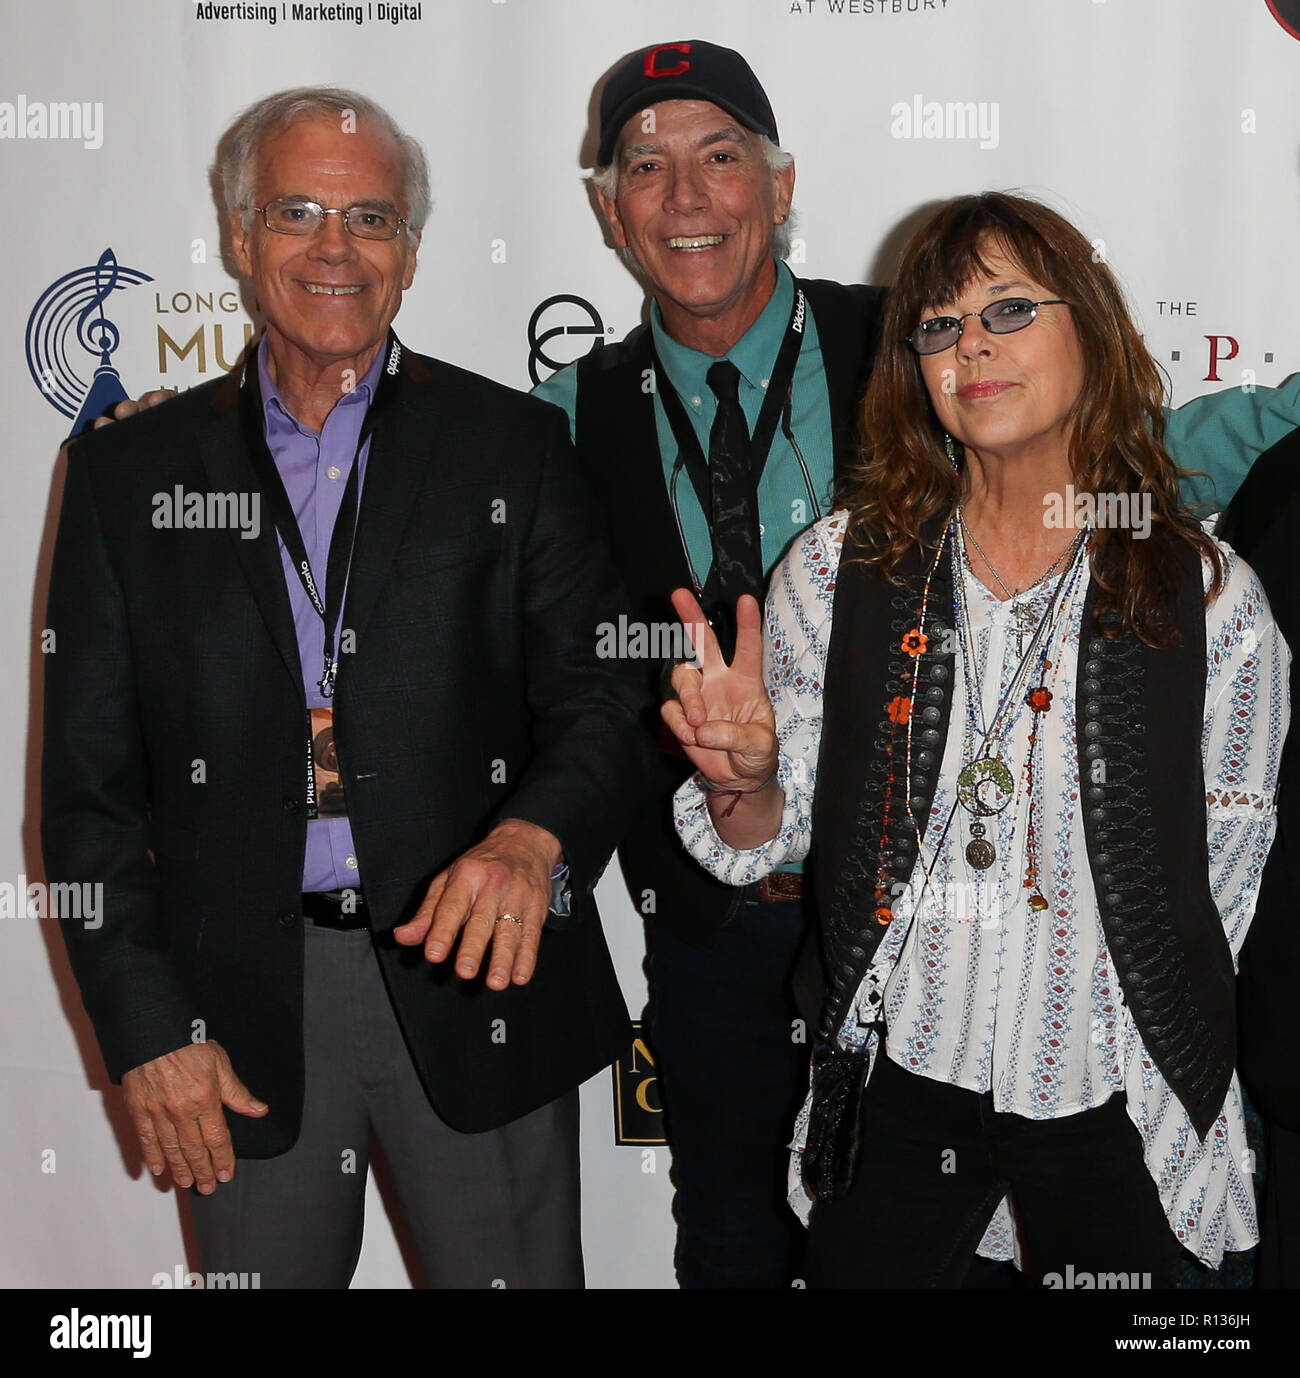 Westbury, New York, USA. 8th Nov 2018. (L-R) Paul Cowsill, Bob Cowsill and Susan Cowsill of the Cowsills attend the 2018 Long Island Music Hall of Fame induction ceremony at The Space at Westbury on November 8, 2018 in Westbury, New York. Credit: AKPhoto/Alamy Live News - Stock Image